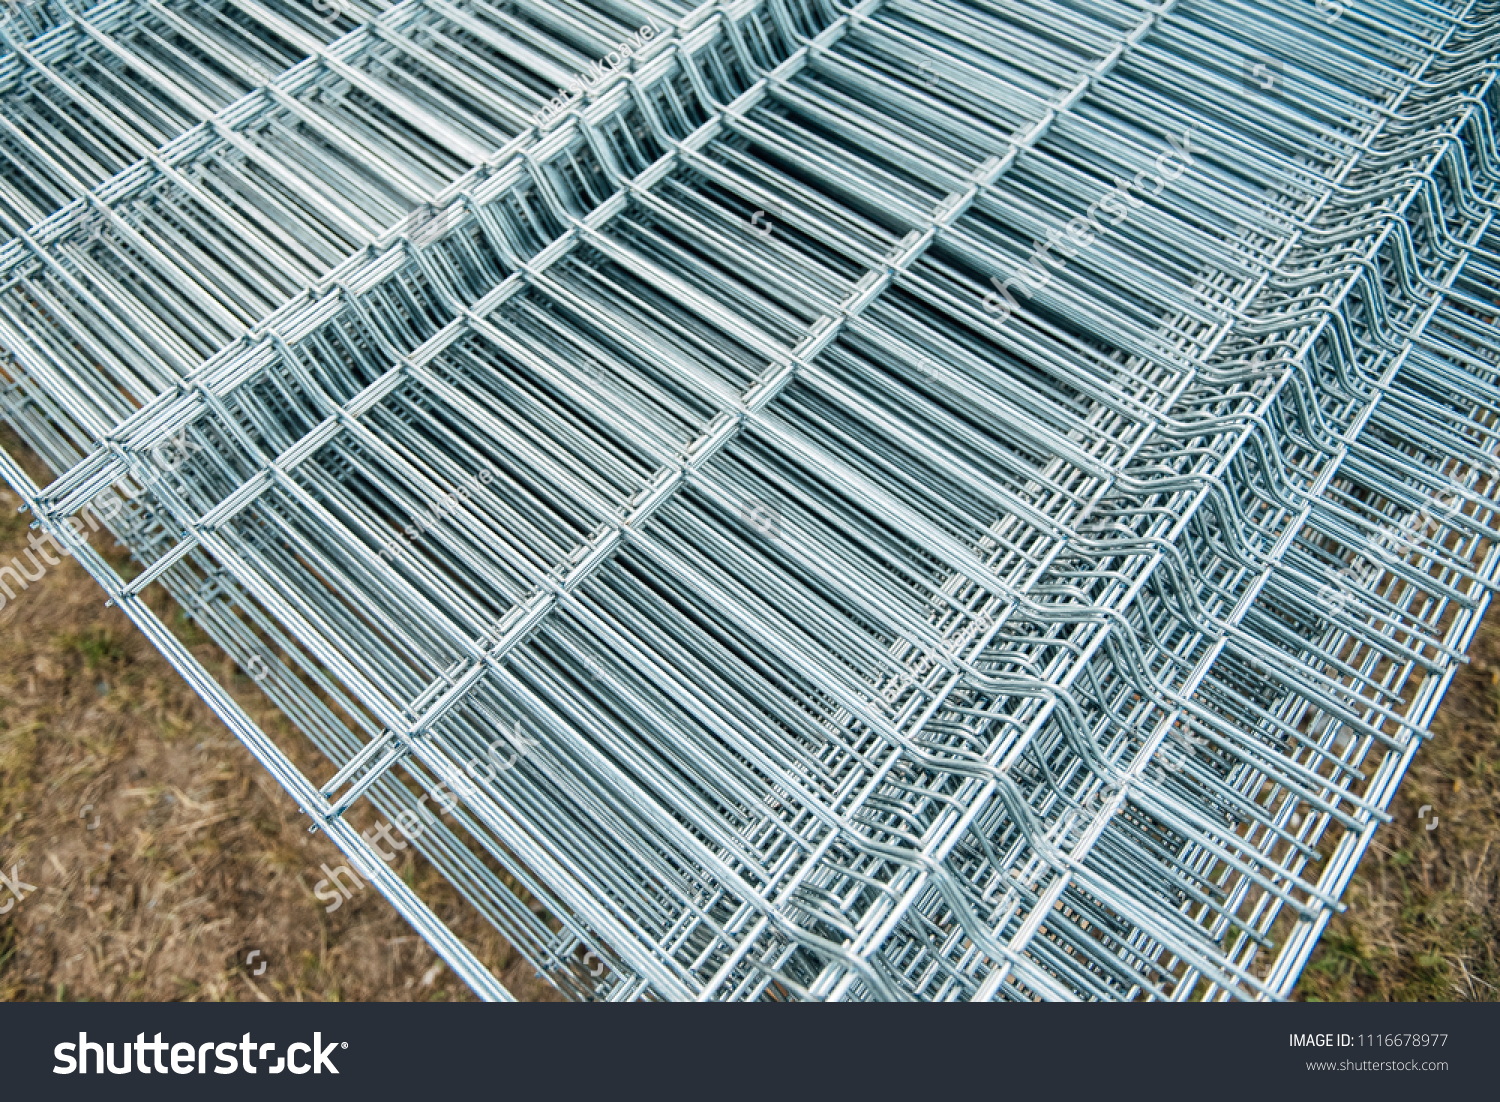 Brilliant Polished Metal Wire Mesh Folded Stock Photo (Edit Now ...